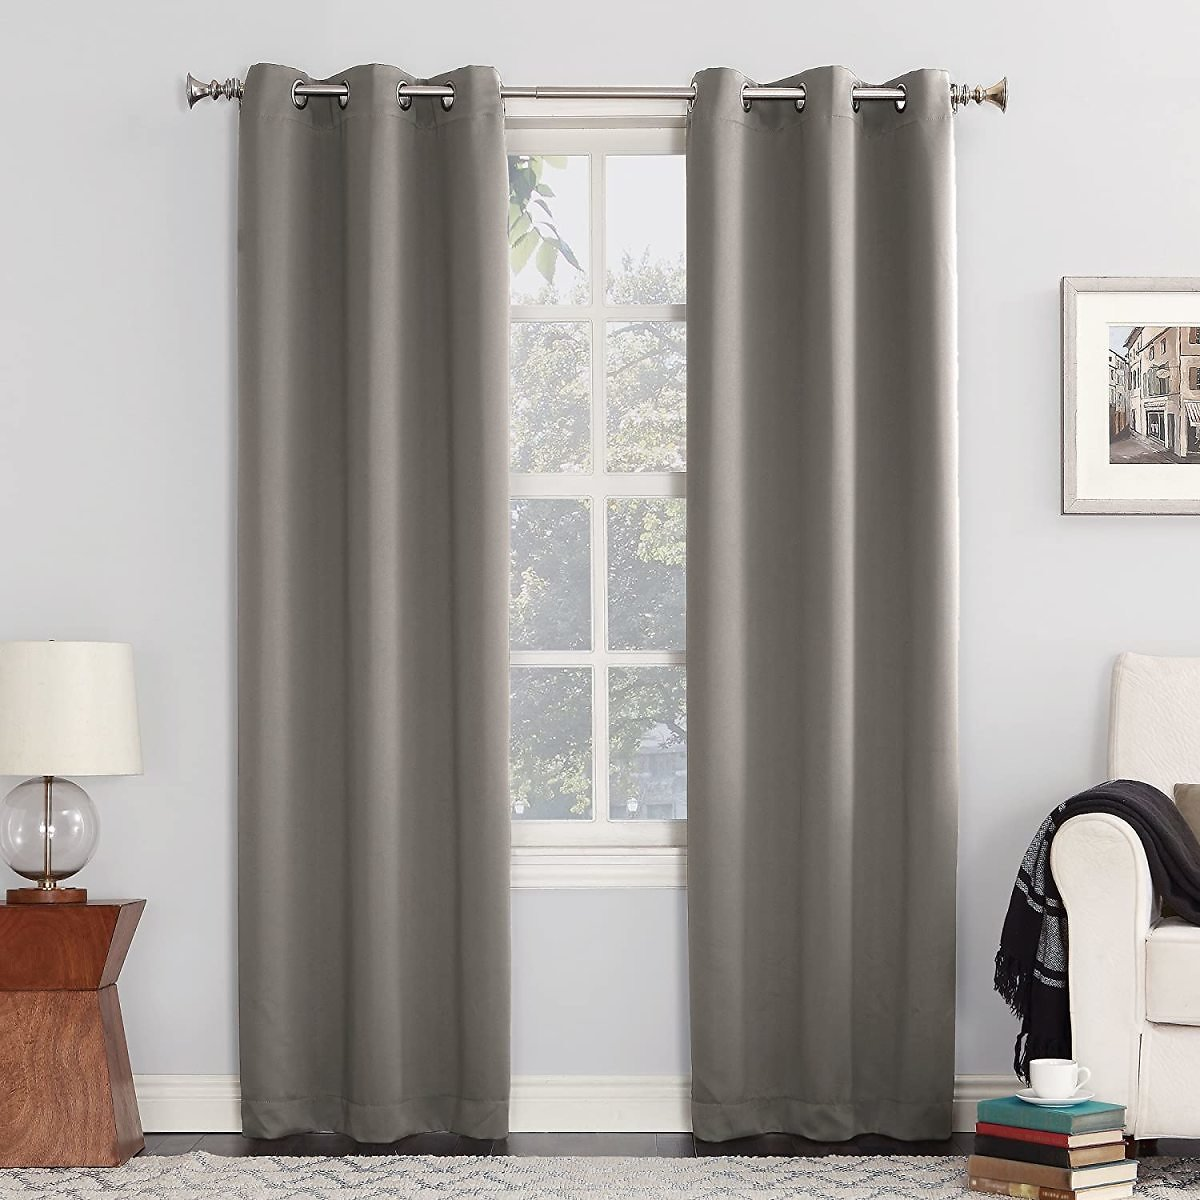 Sun Zero Easton Blackout Energy Efficient Grommet Curtain Panel, 40